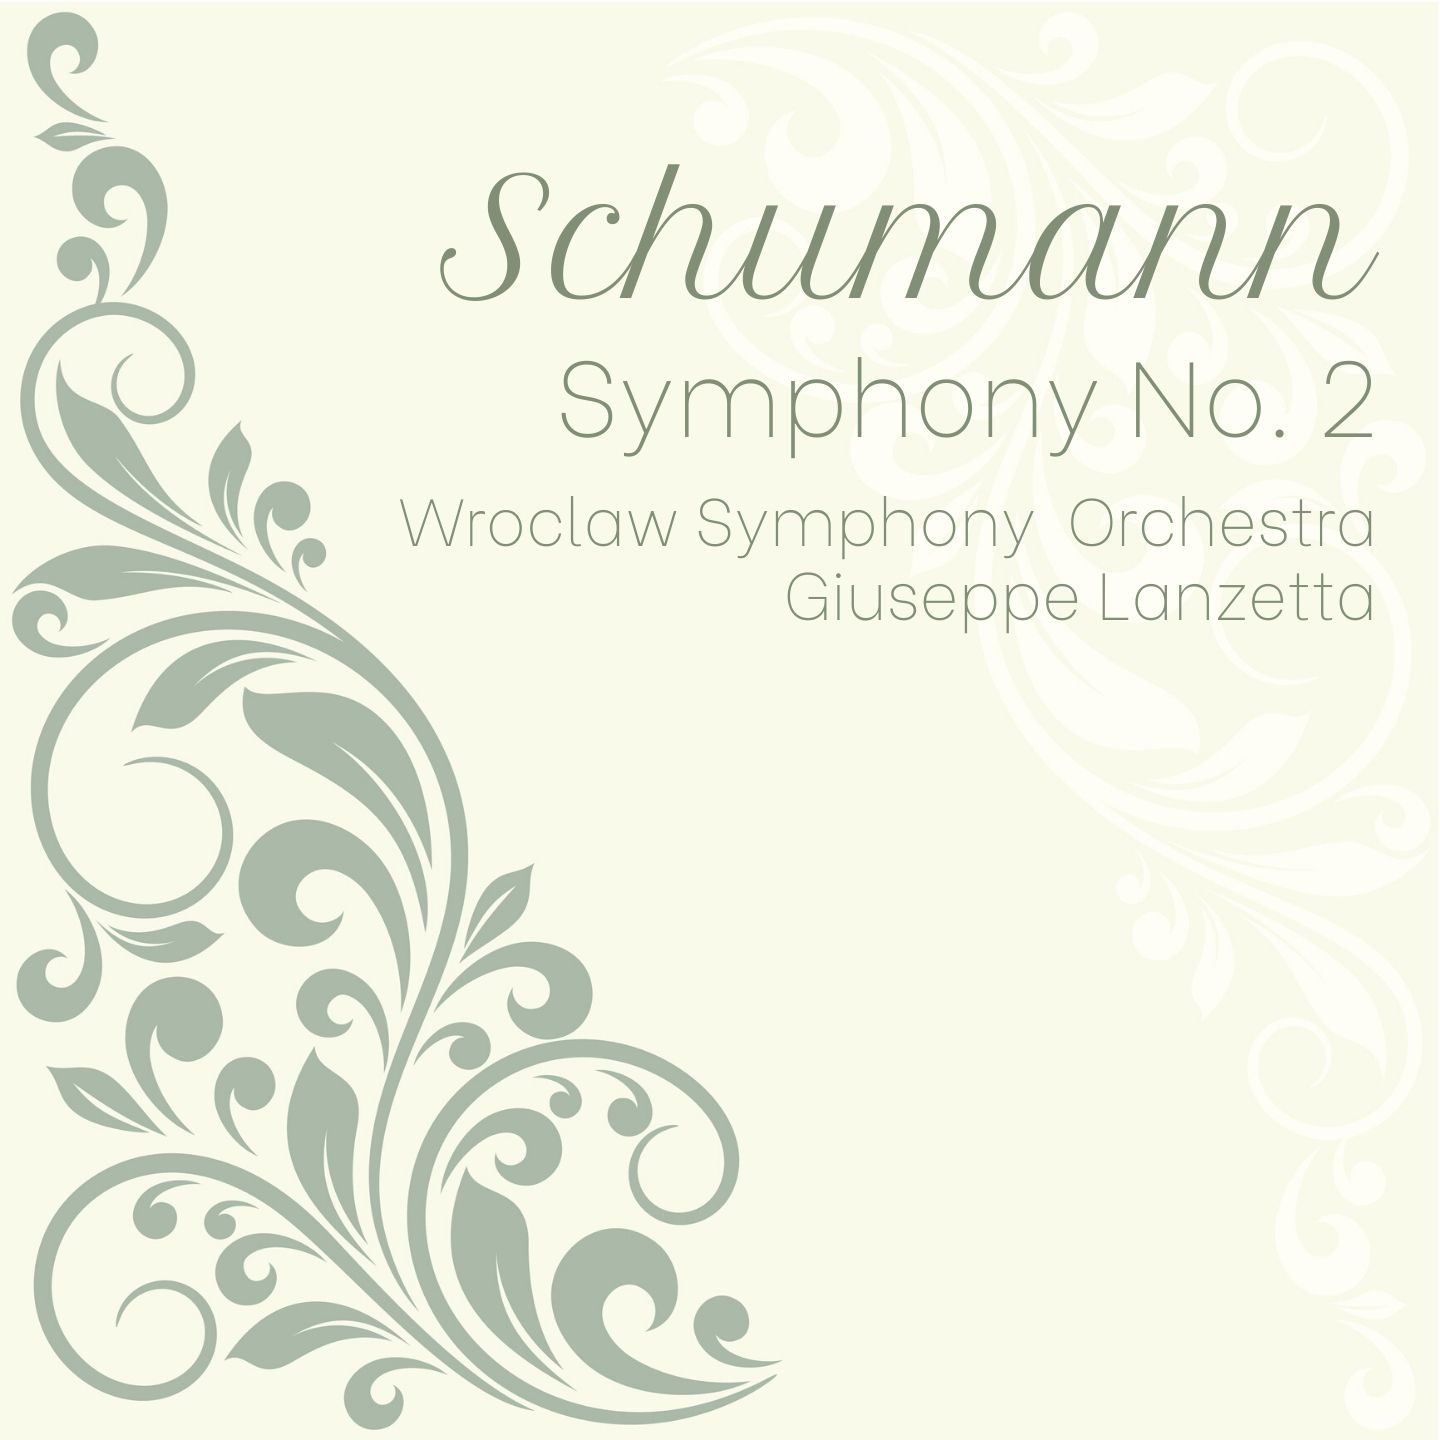 Schumann: Symphony No. 2 in C major, Op. 61